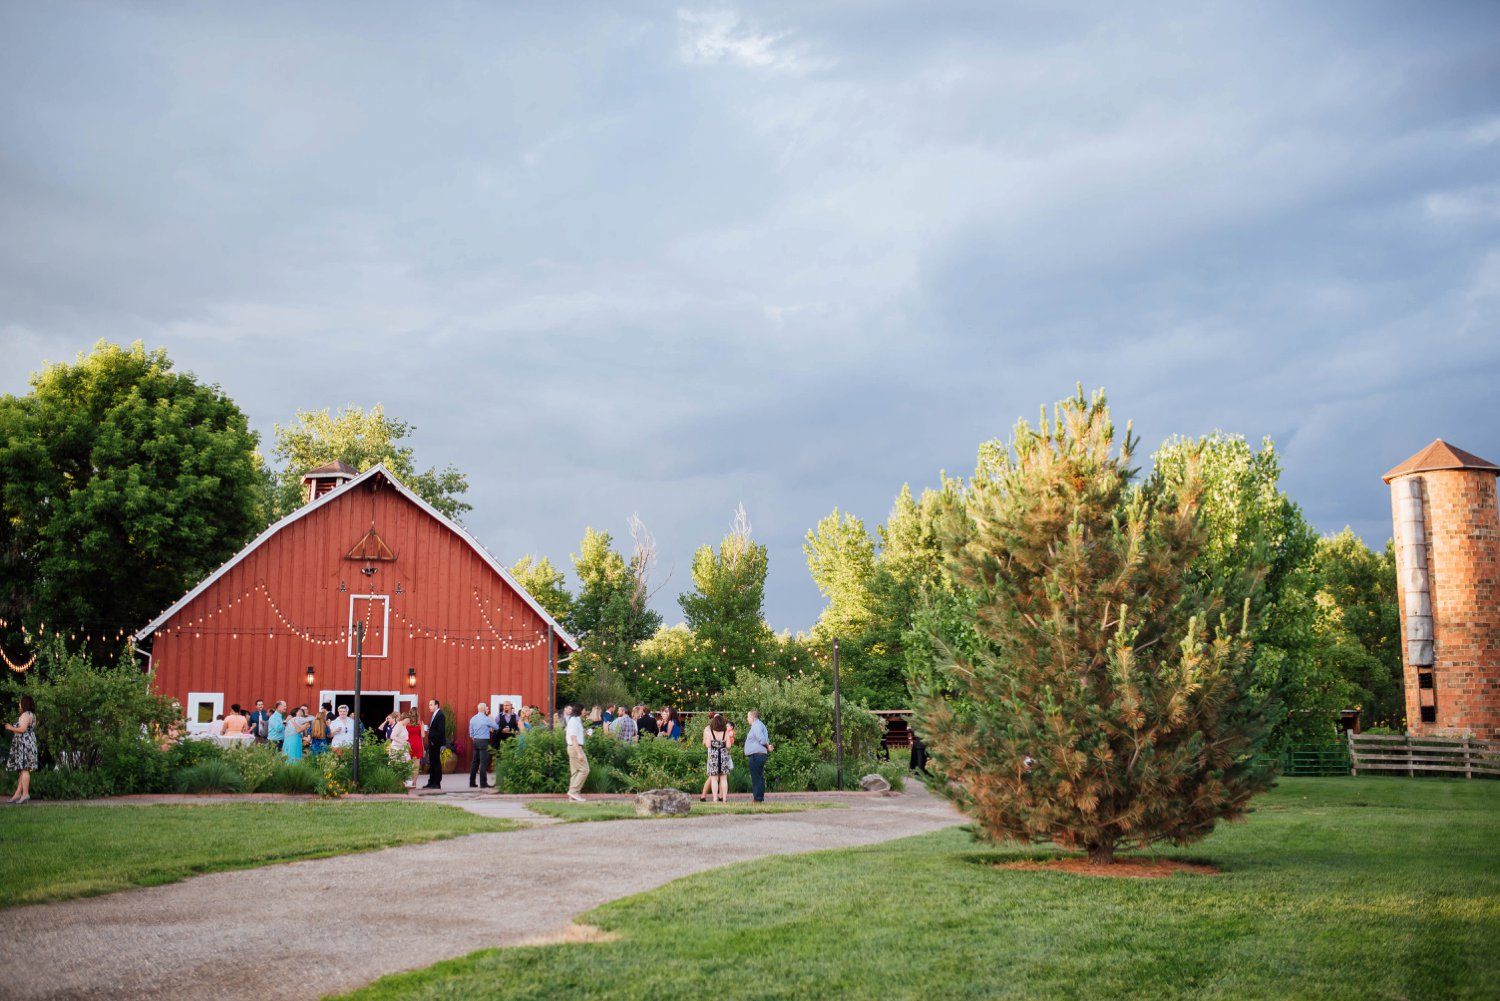 Chatfield farm at the Denver Botanic Gardens is a beautiful wedding ceremony and reception venue in Colorado.Photo by Maddie Mae Photography